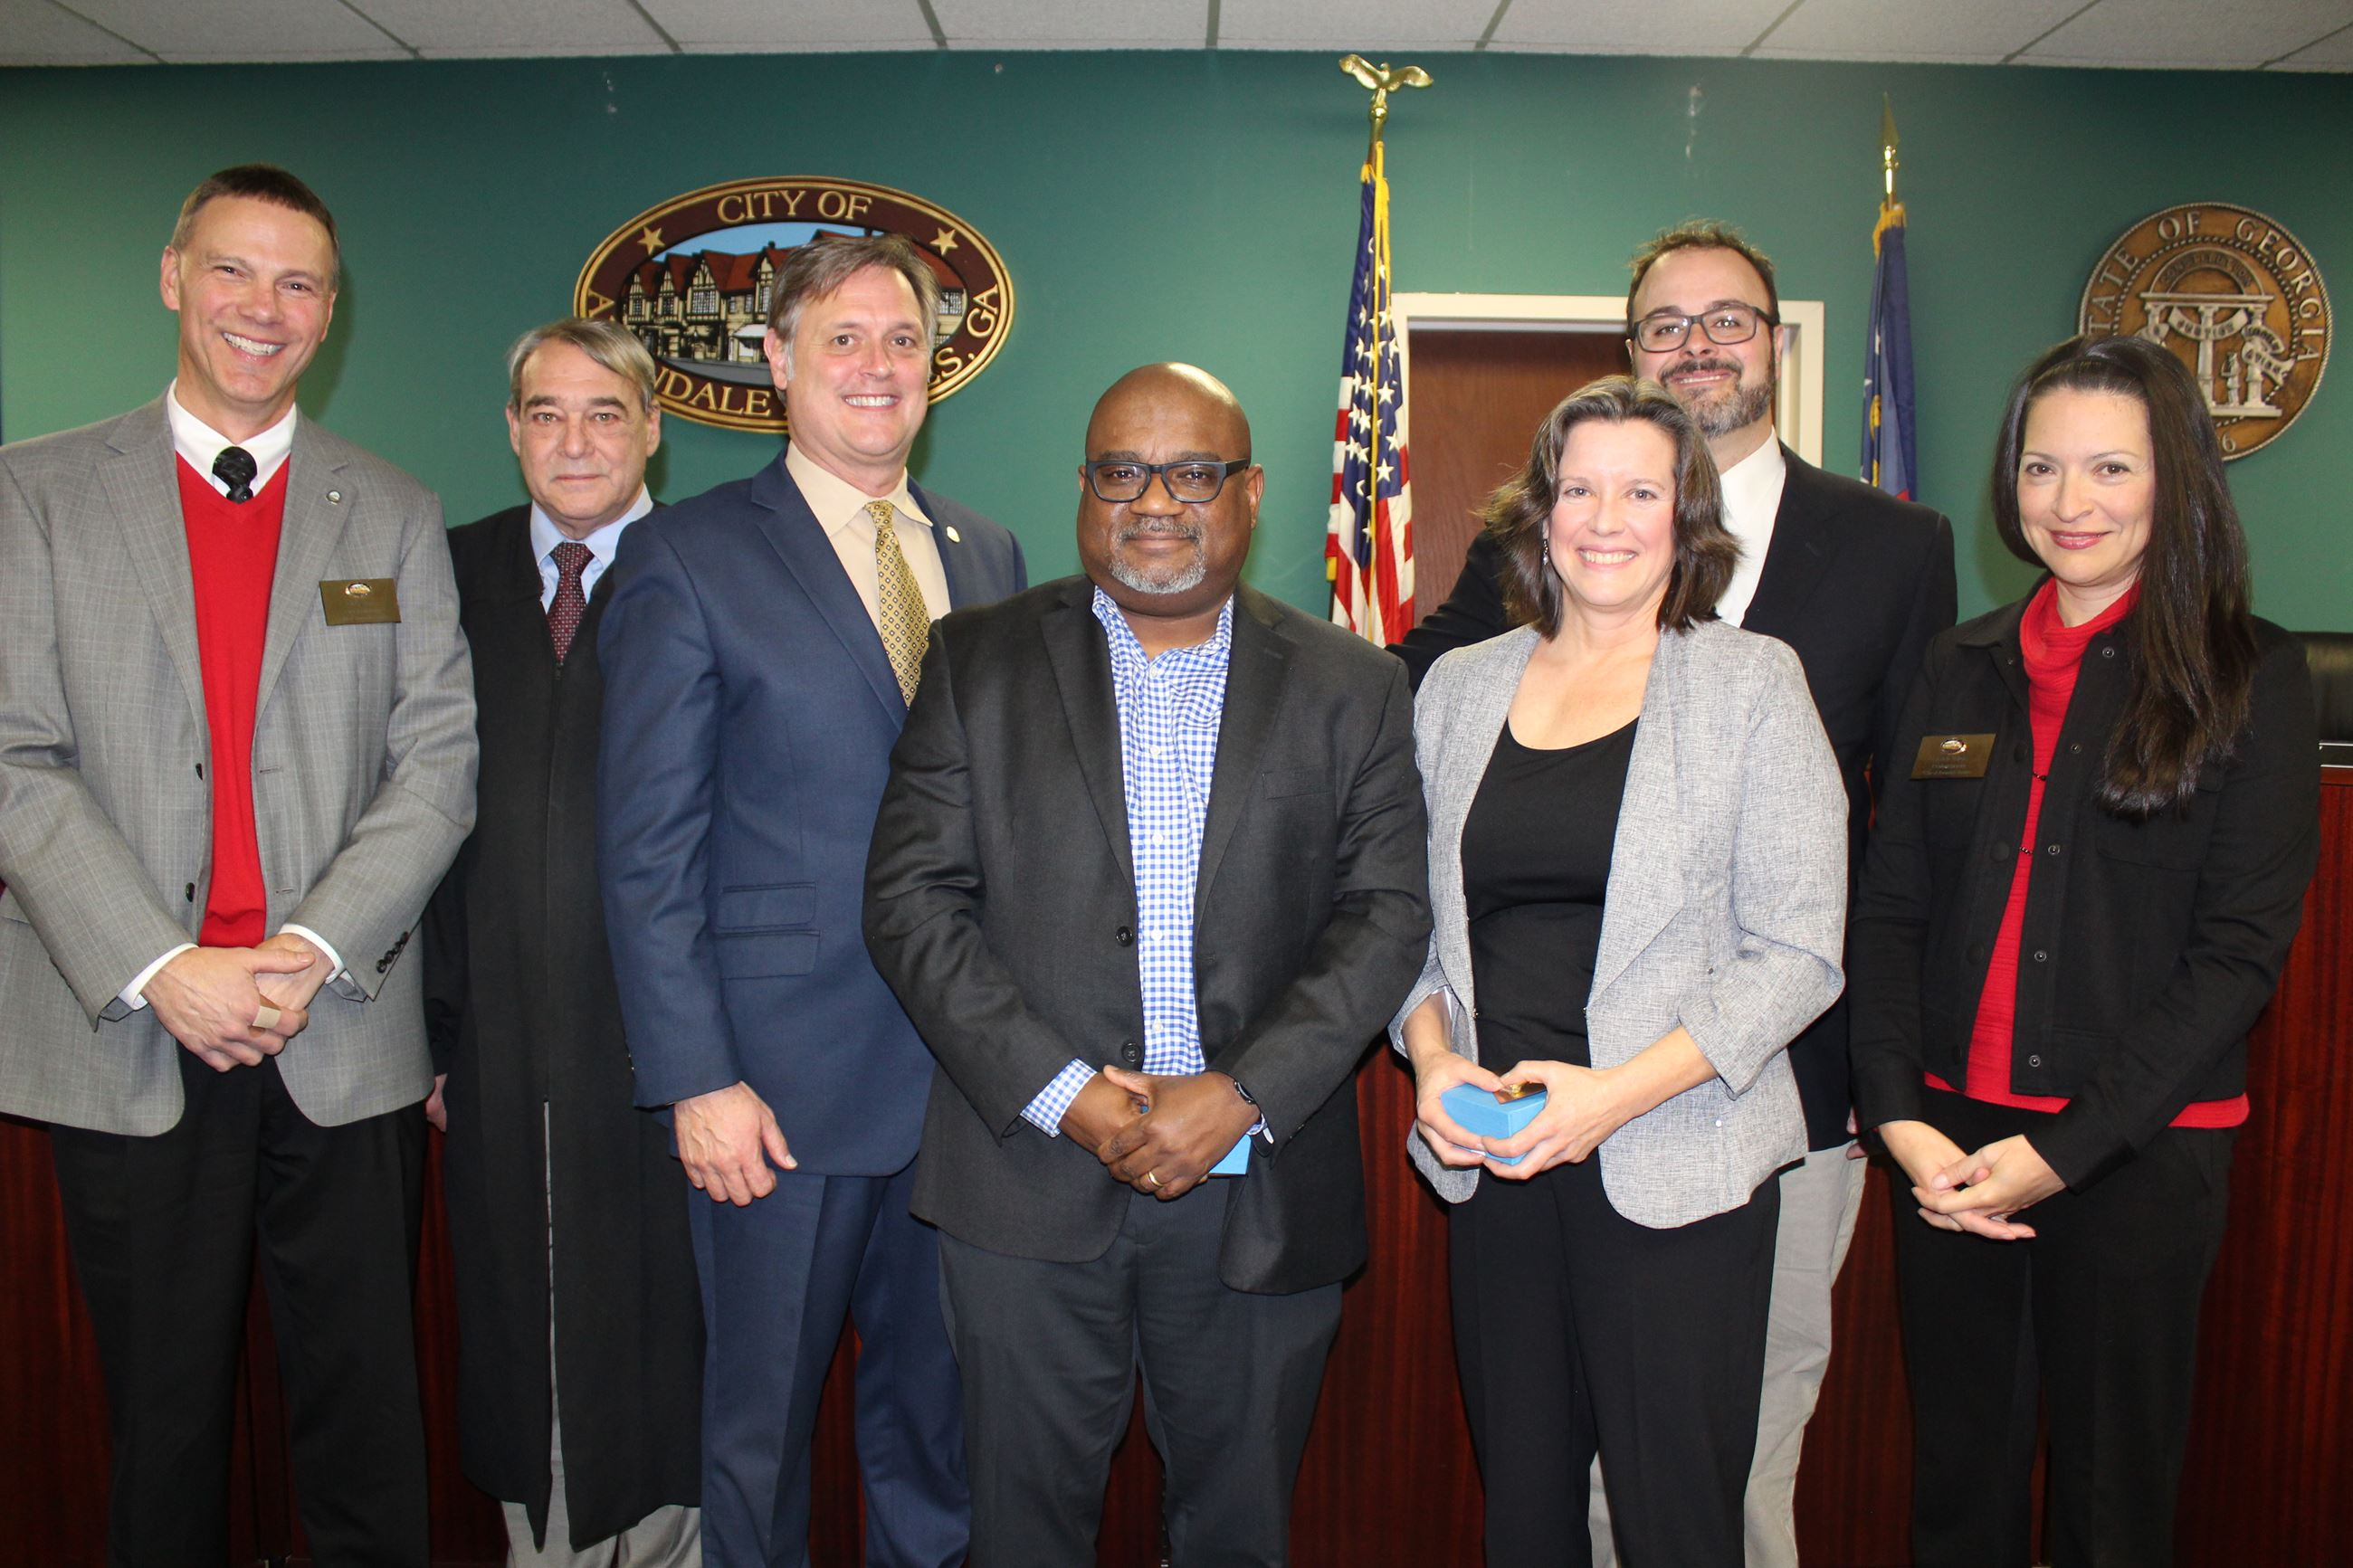 Board of Mayor and Commissioners with City Manager Clai Brown and Judge Stephen Nicholas